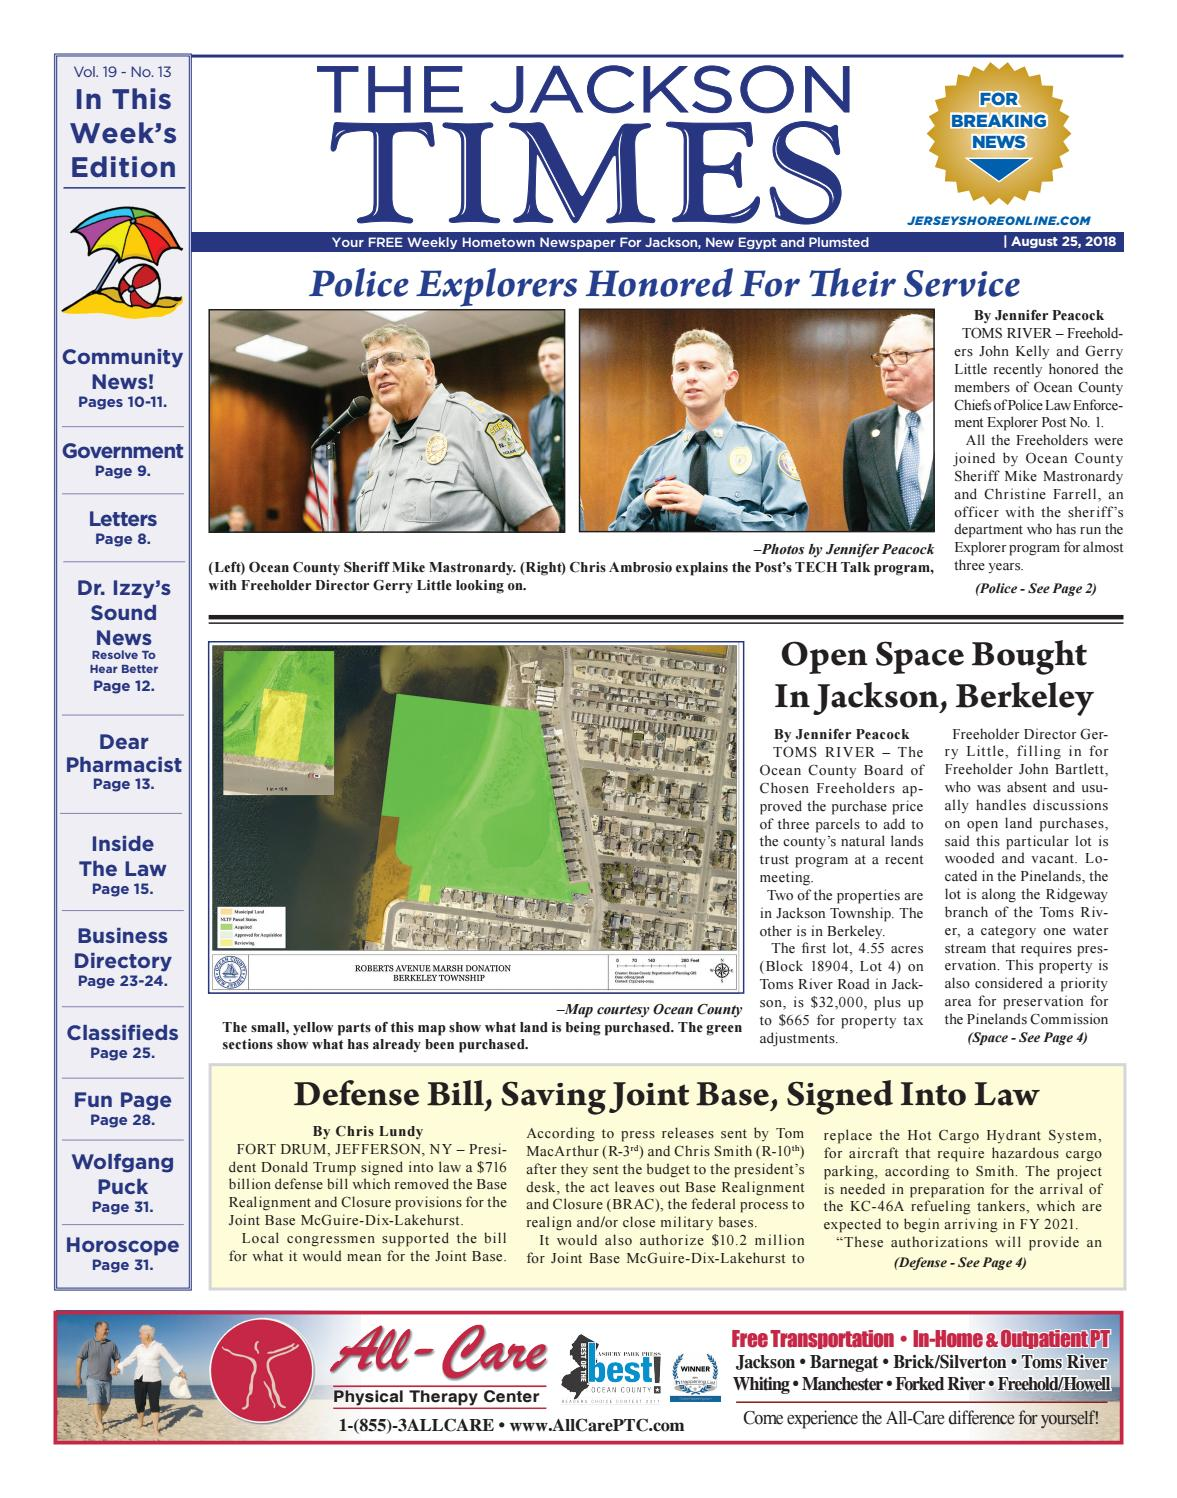 2018-08-25 - The Jackson Times by Micromedia Publications